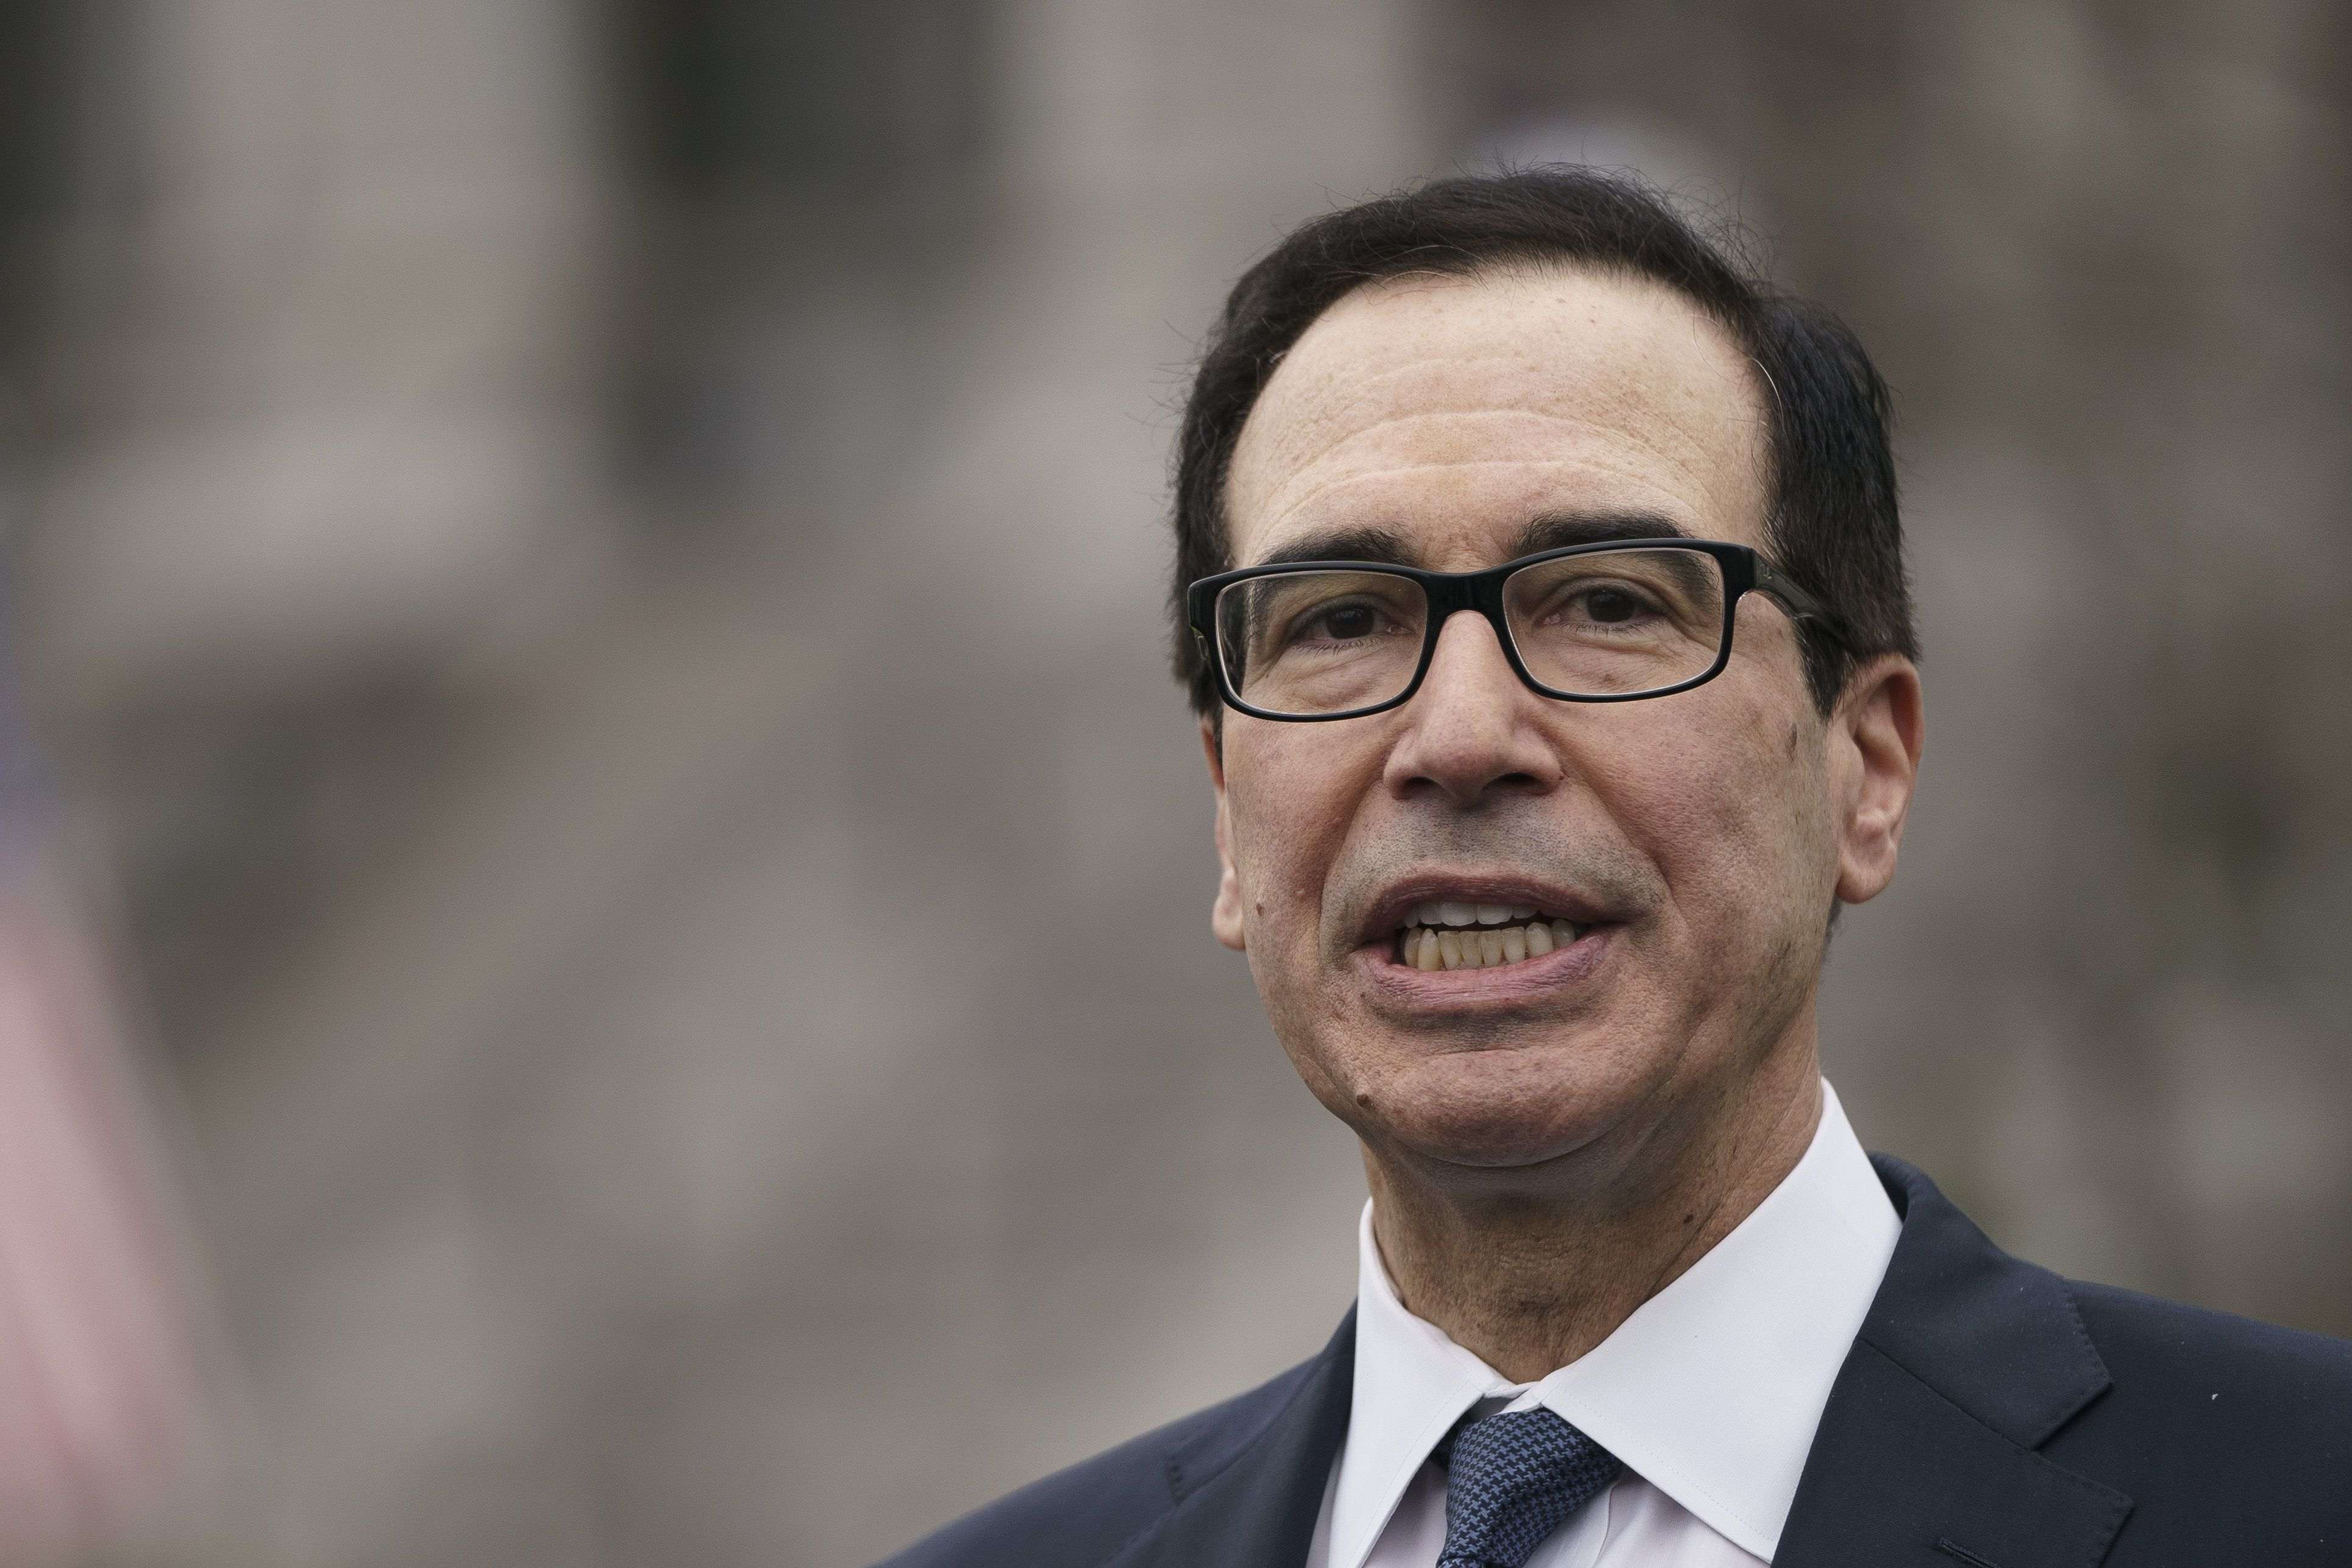 After IRS post, Mnuchin says social security recipients will automatically get stimulus checks